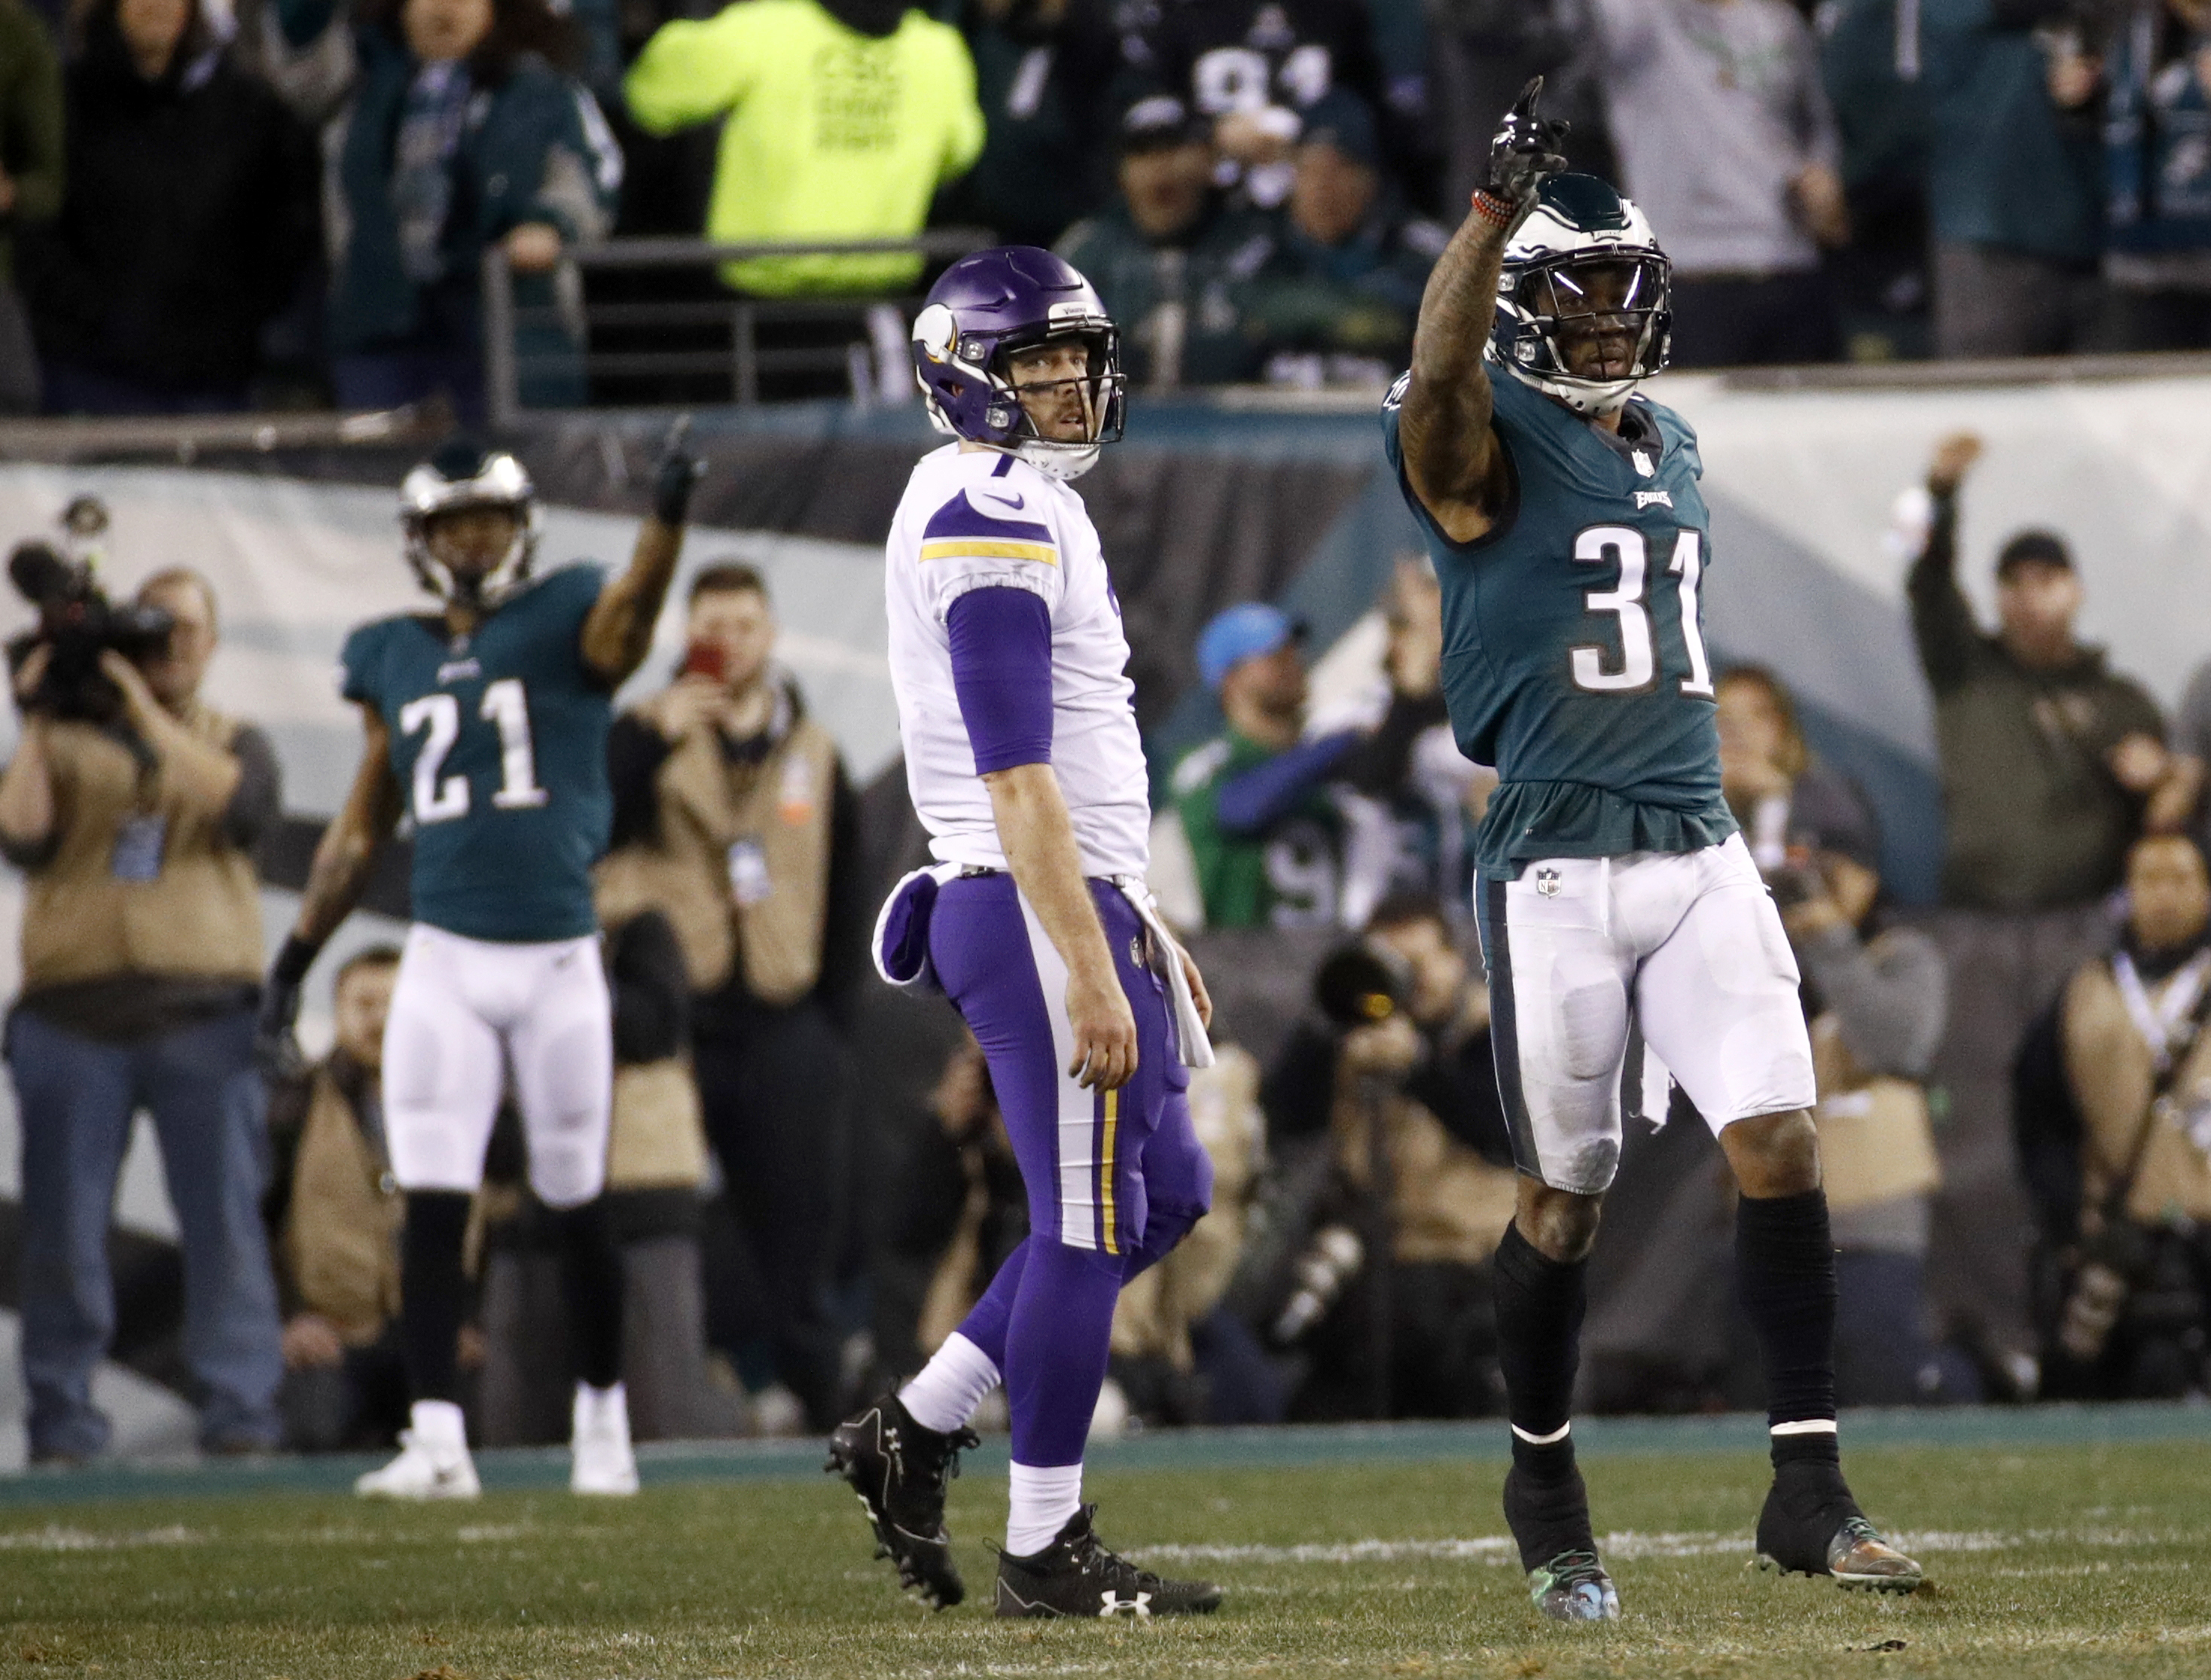 "<div class=""meta image-caption""><div class=""origin-logo origin-image ap""><span>AP</span></div><span class=""caption-text"">Philadelphia Eagles' Jalen Mills celebrates a fumble recovery in front of Minnesota Vikings' Case Keenum during the first half of the NFL football NFC championship game. (AP Photo/Patrick Semansky)</span></div>"